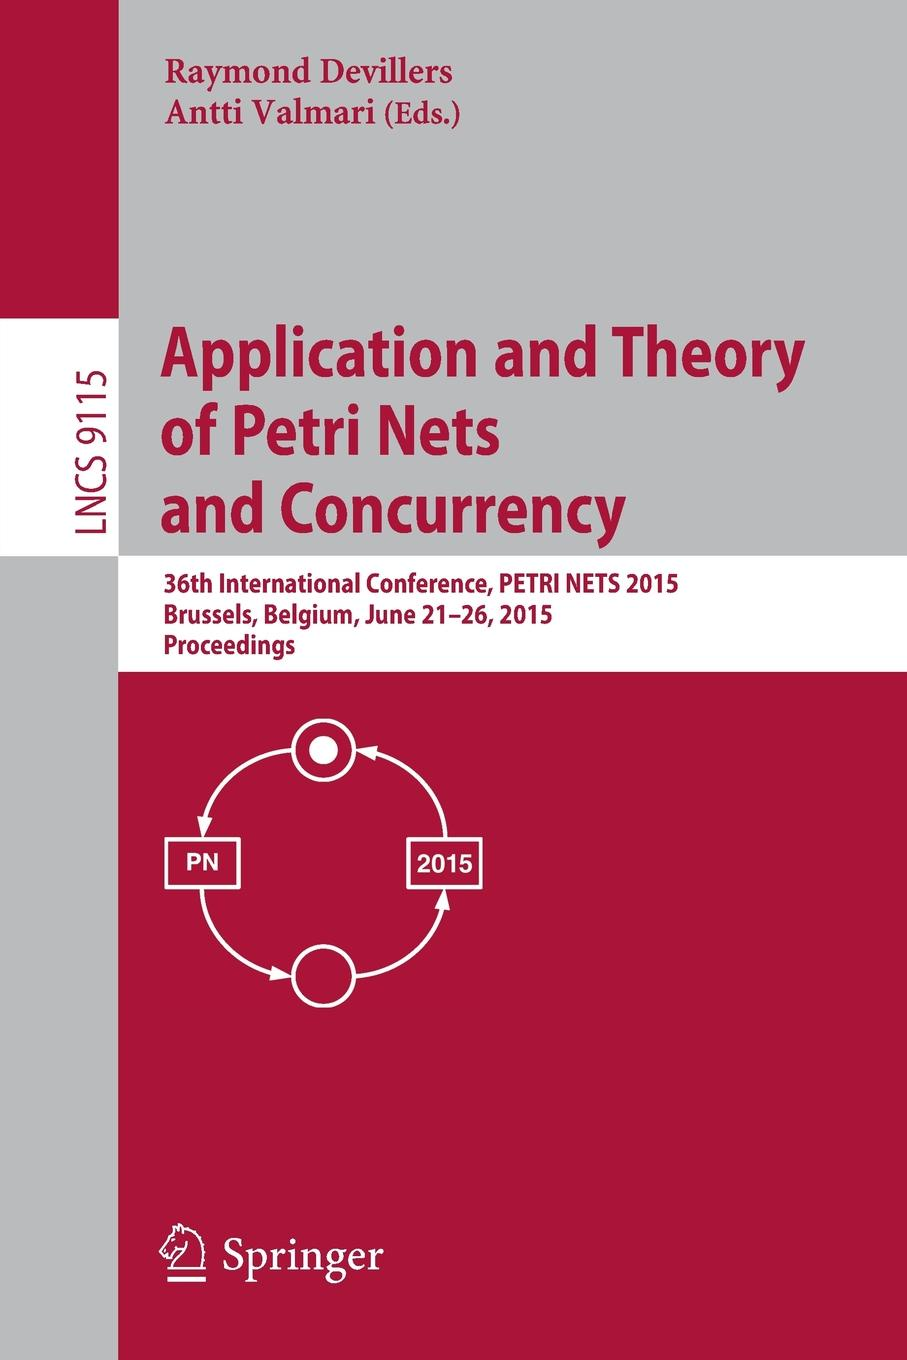 Application and Theory of Petri Nets and Concurrency. 36th International Conference, PETRI NETS 2015, Brussels, Belgium, June 21-26, 2015, Proceedings brussels type